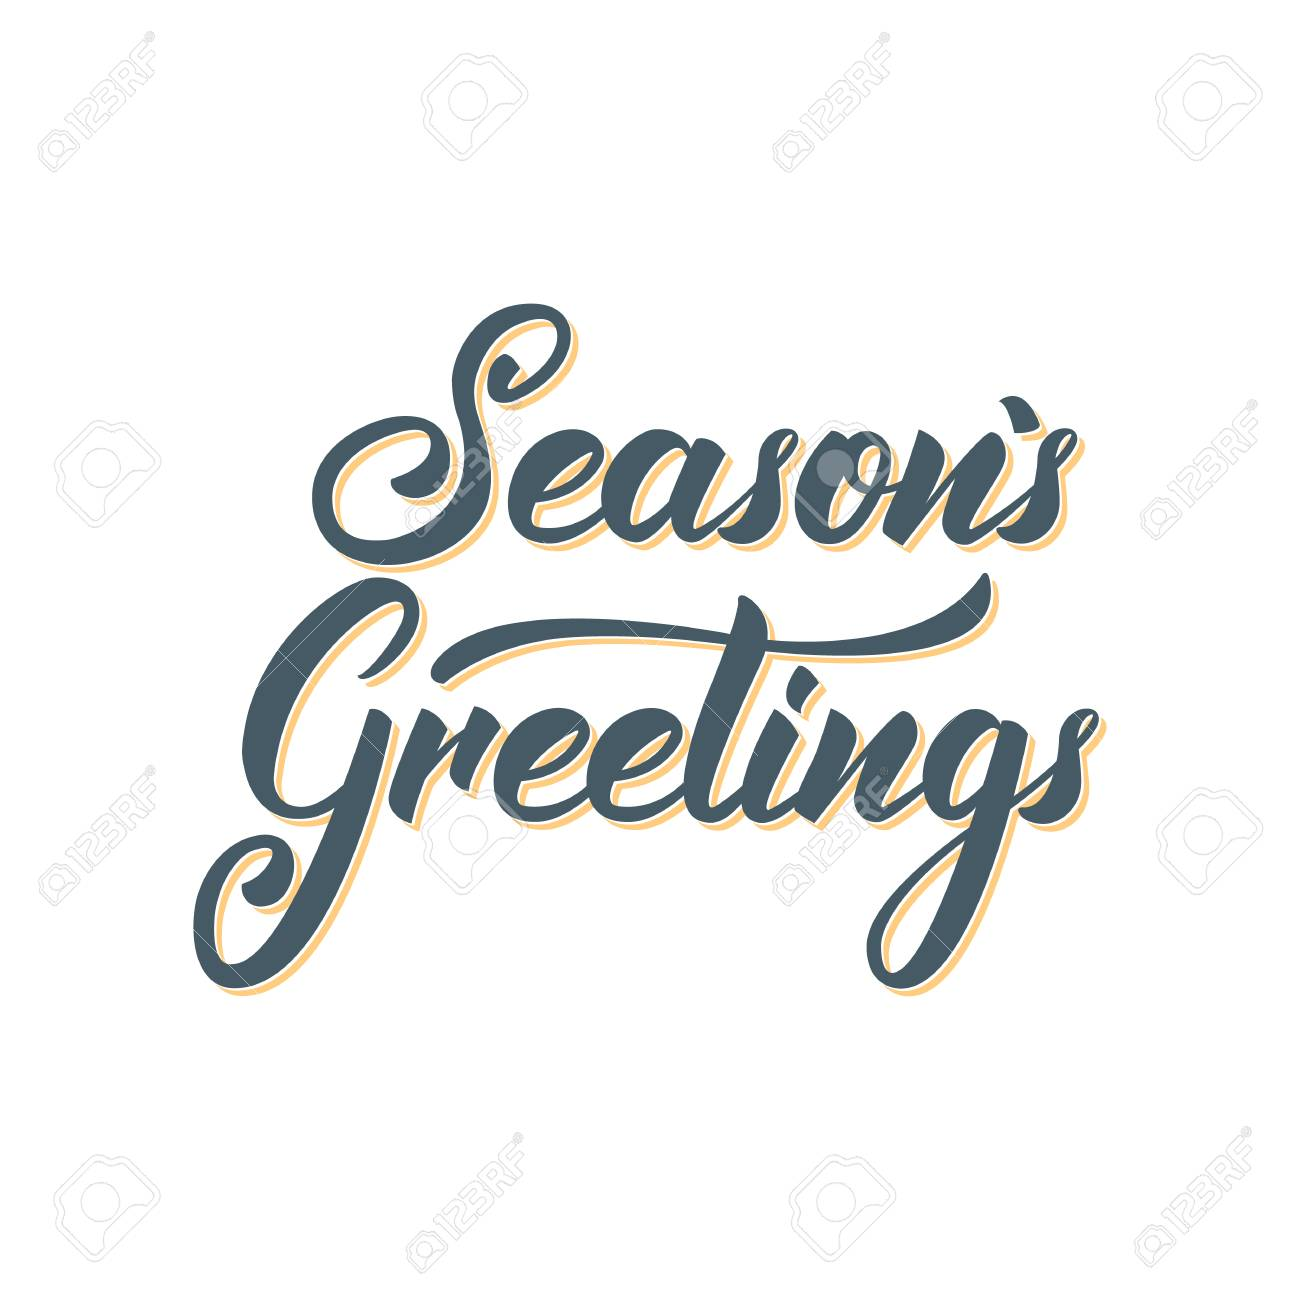 seasons greetings text lettering design christmas and new year greeting typography stock vector 88839843